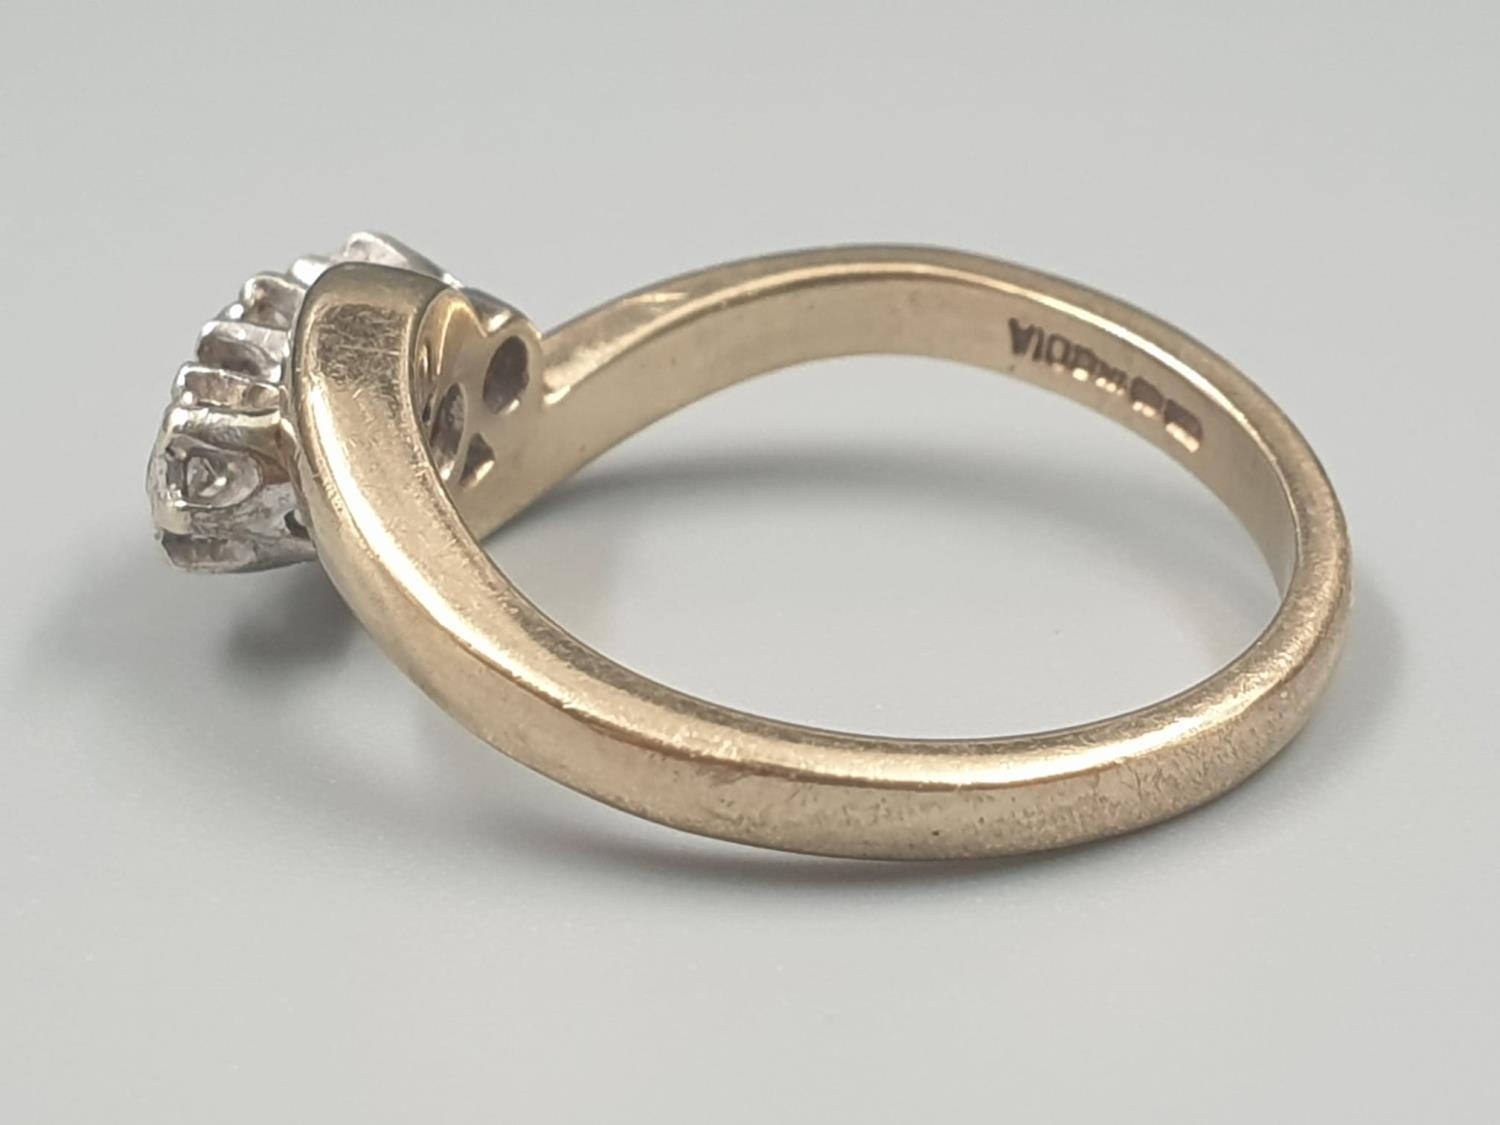 9K YELLOW GOLD VINTAGE 3 STONE DIAMOND TWIST RING APPROX 0.10CT DIAMONDS WEIGHT 3G SIZE L1/2 - Image 3 of 7